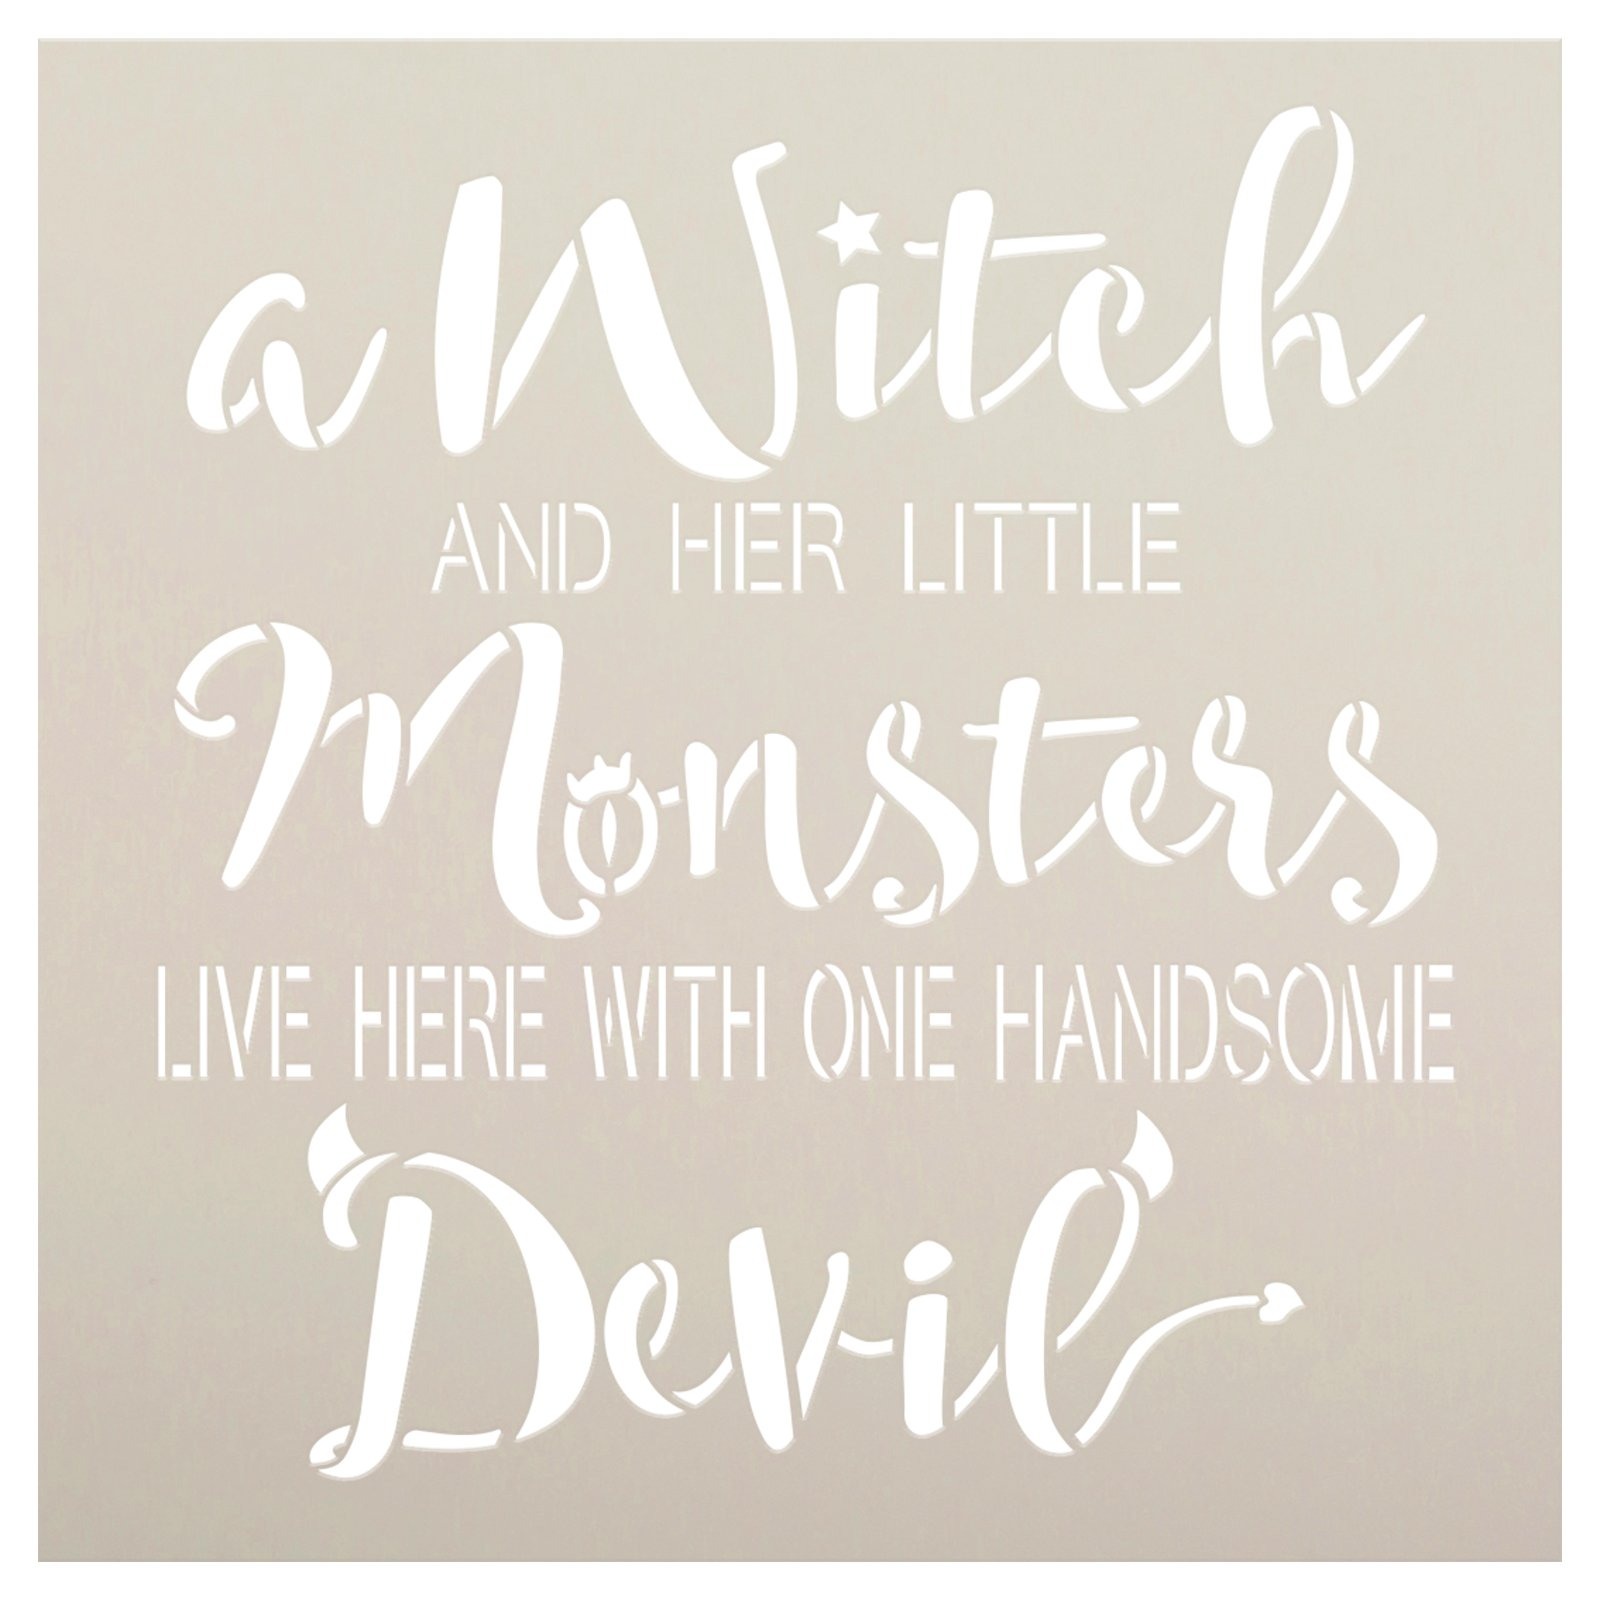 Witch Little Monsters Handsome Devil Stencil by StudioR12 | Craft DIY Halloween Home Decor | Paint Wood Sign | Reusable Mylar Template | Select Size